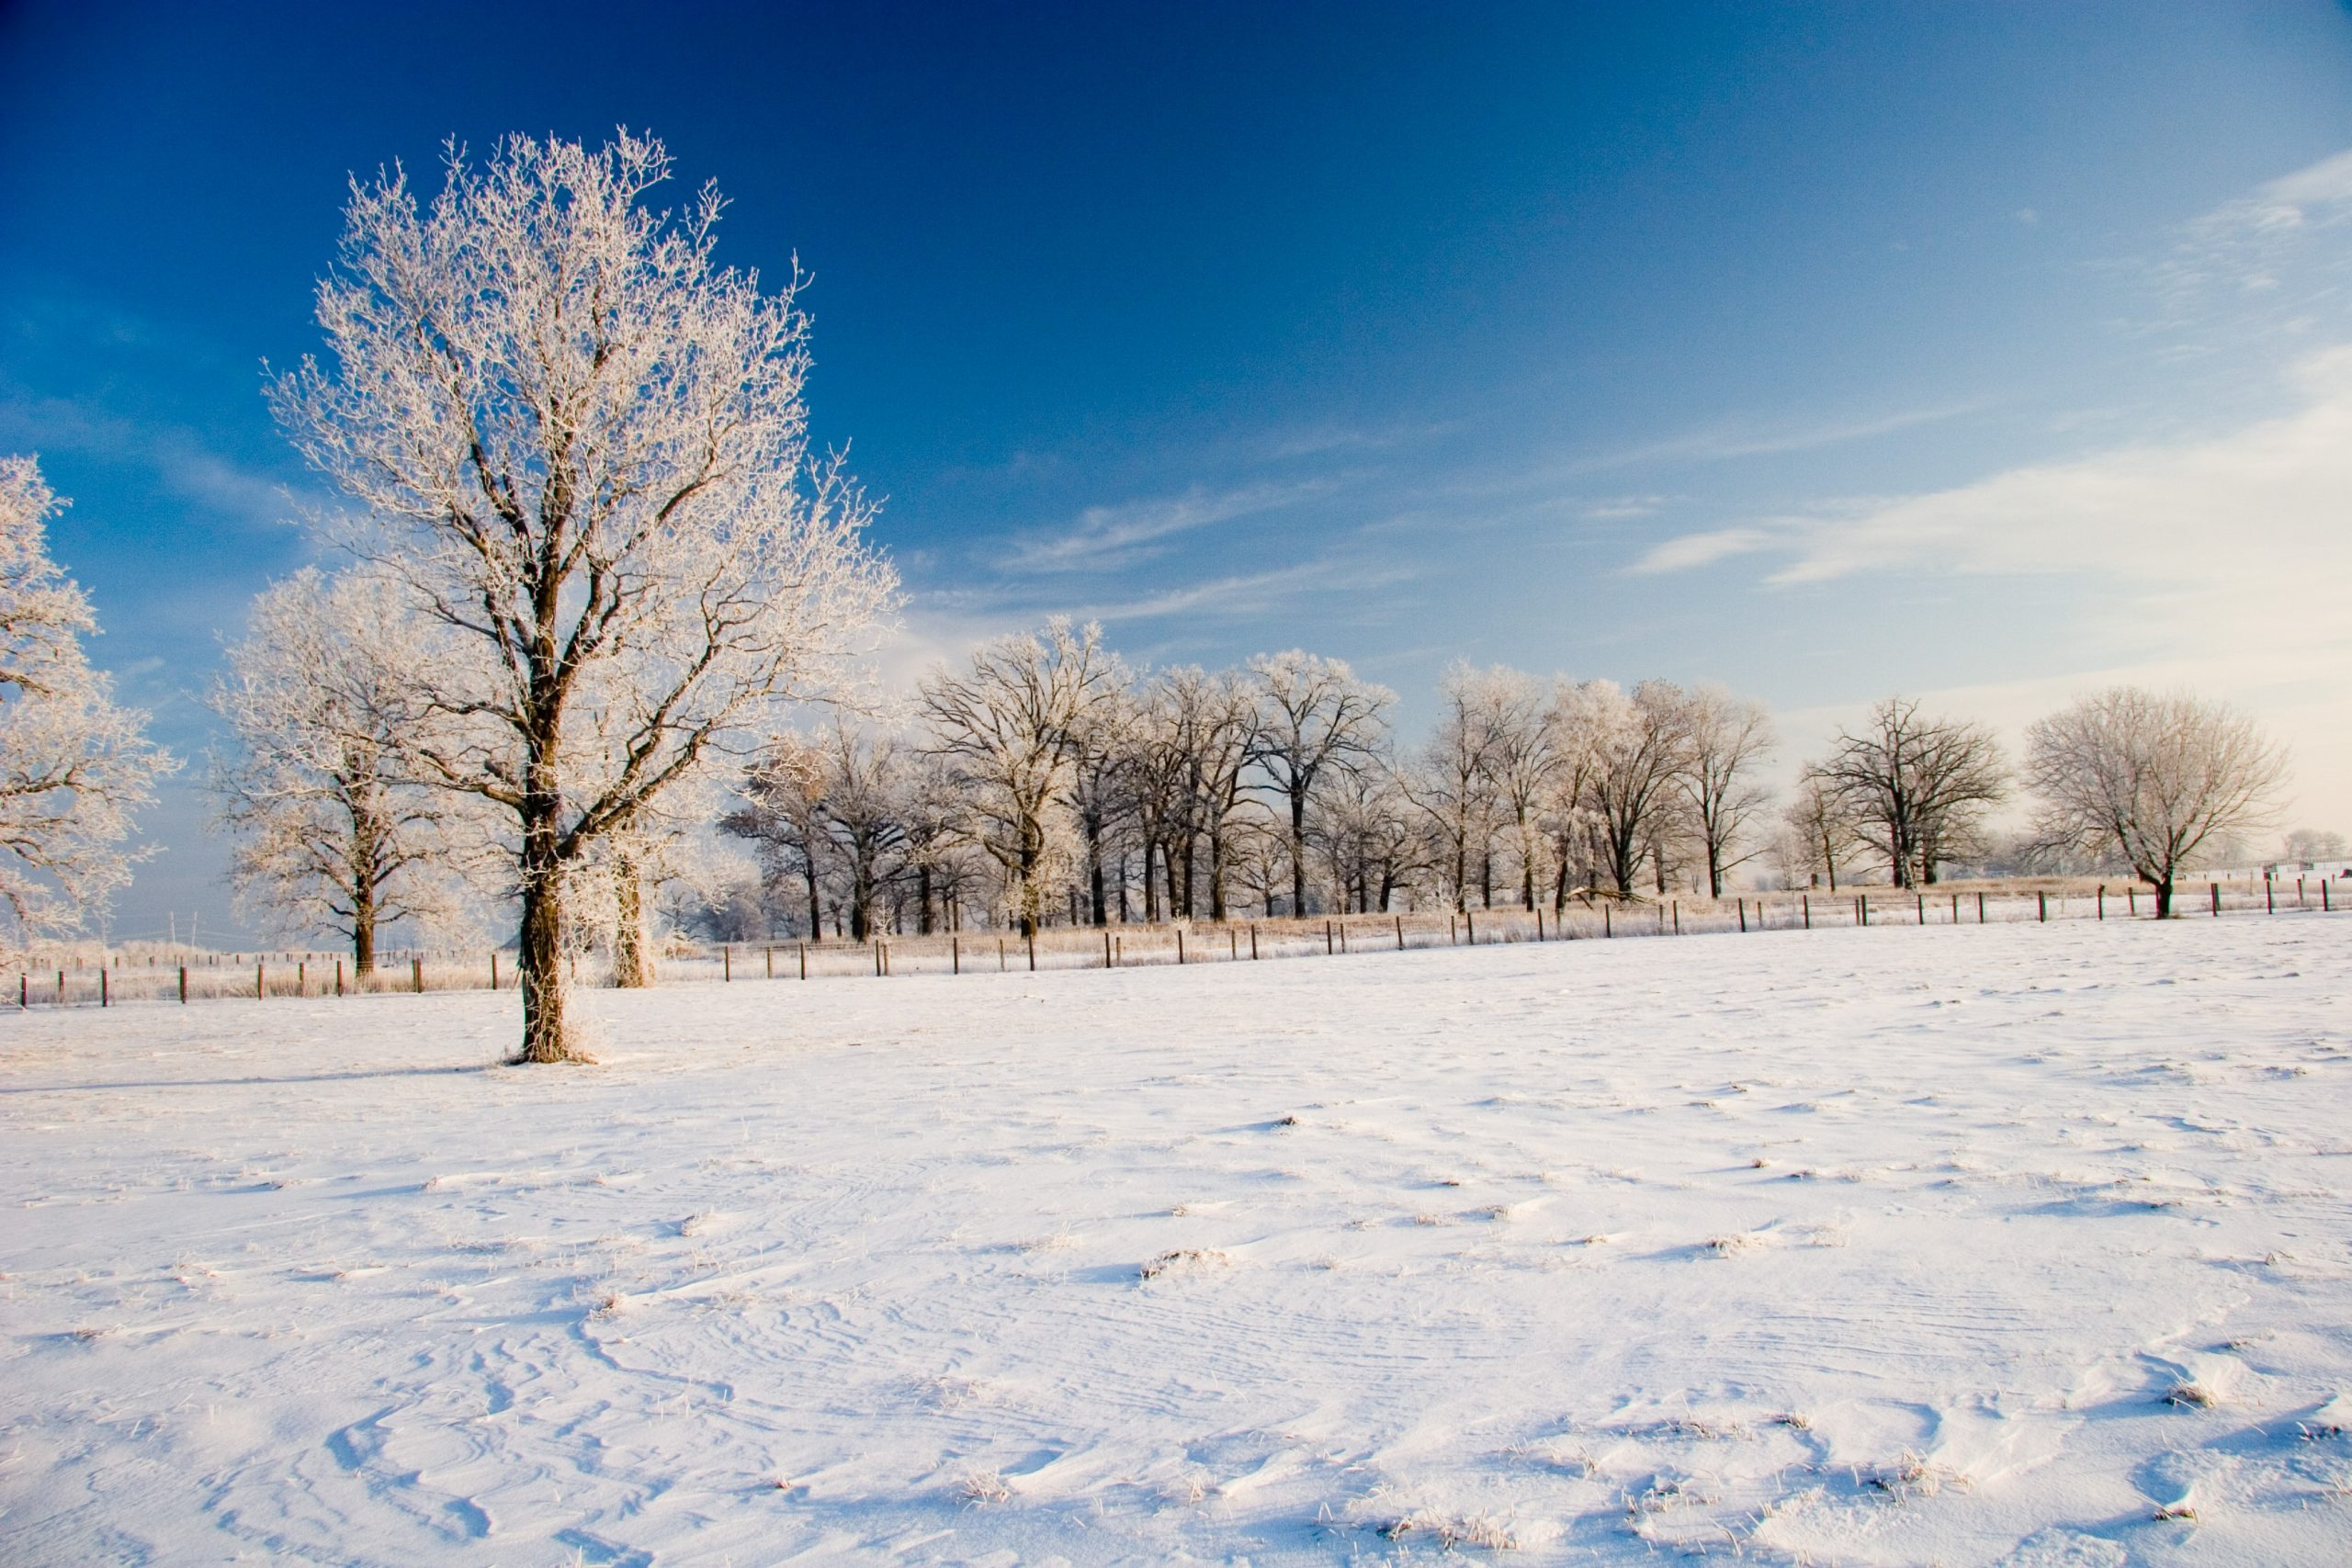 It's a frosty morning at the Industrial Building Complex on Dec. 22, 2005. nature, landscape, winter, snow, tree, woods, prairie, sky Photo: Tom Nicol